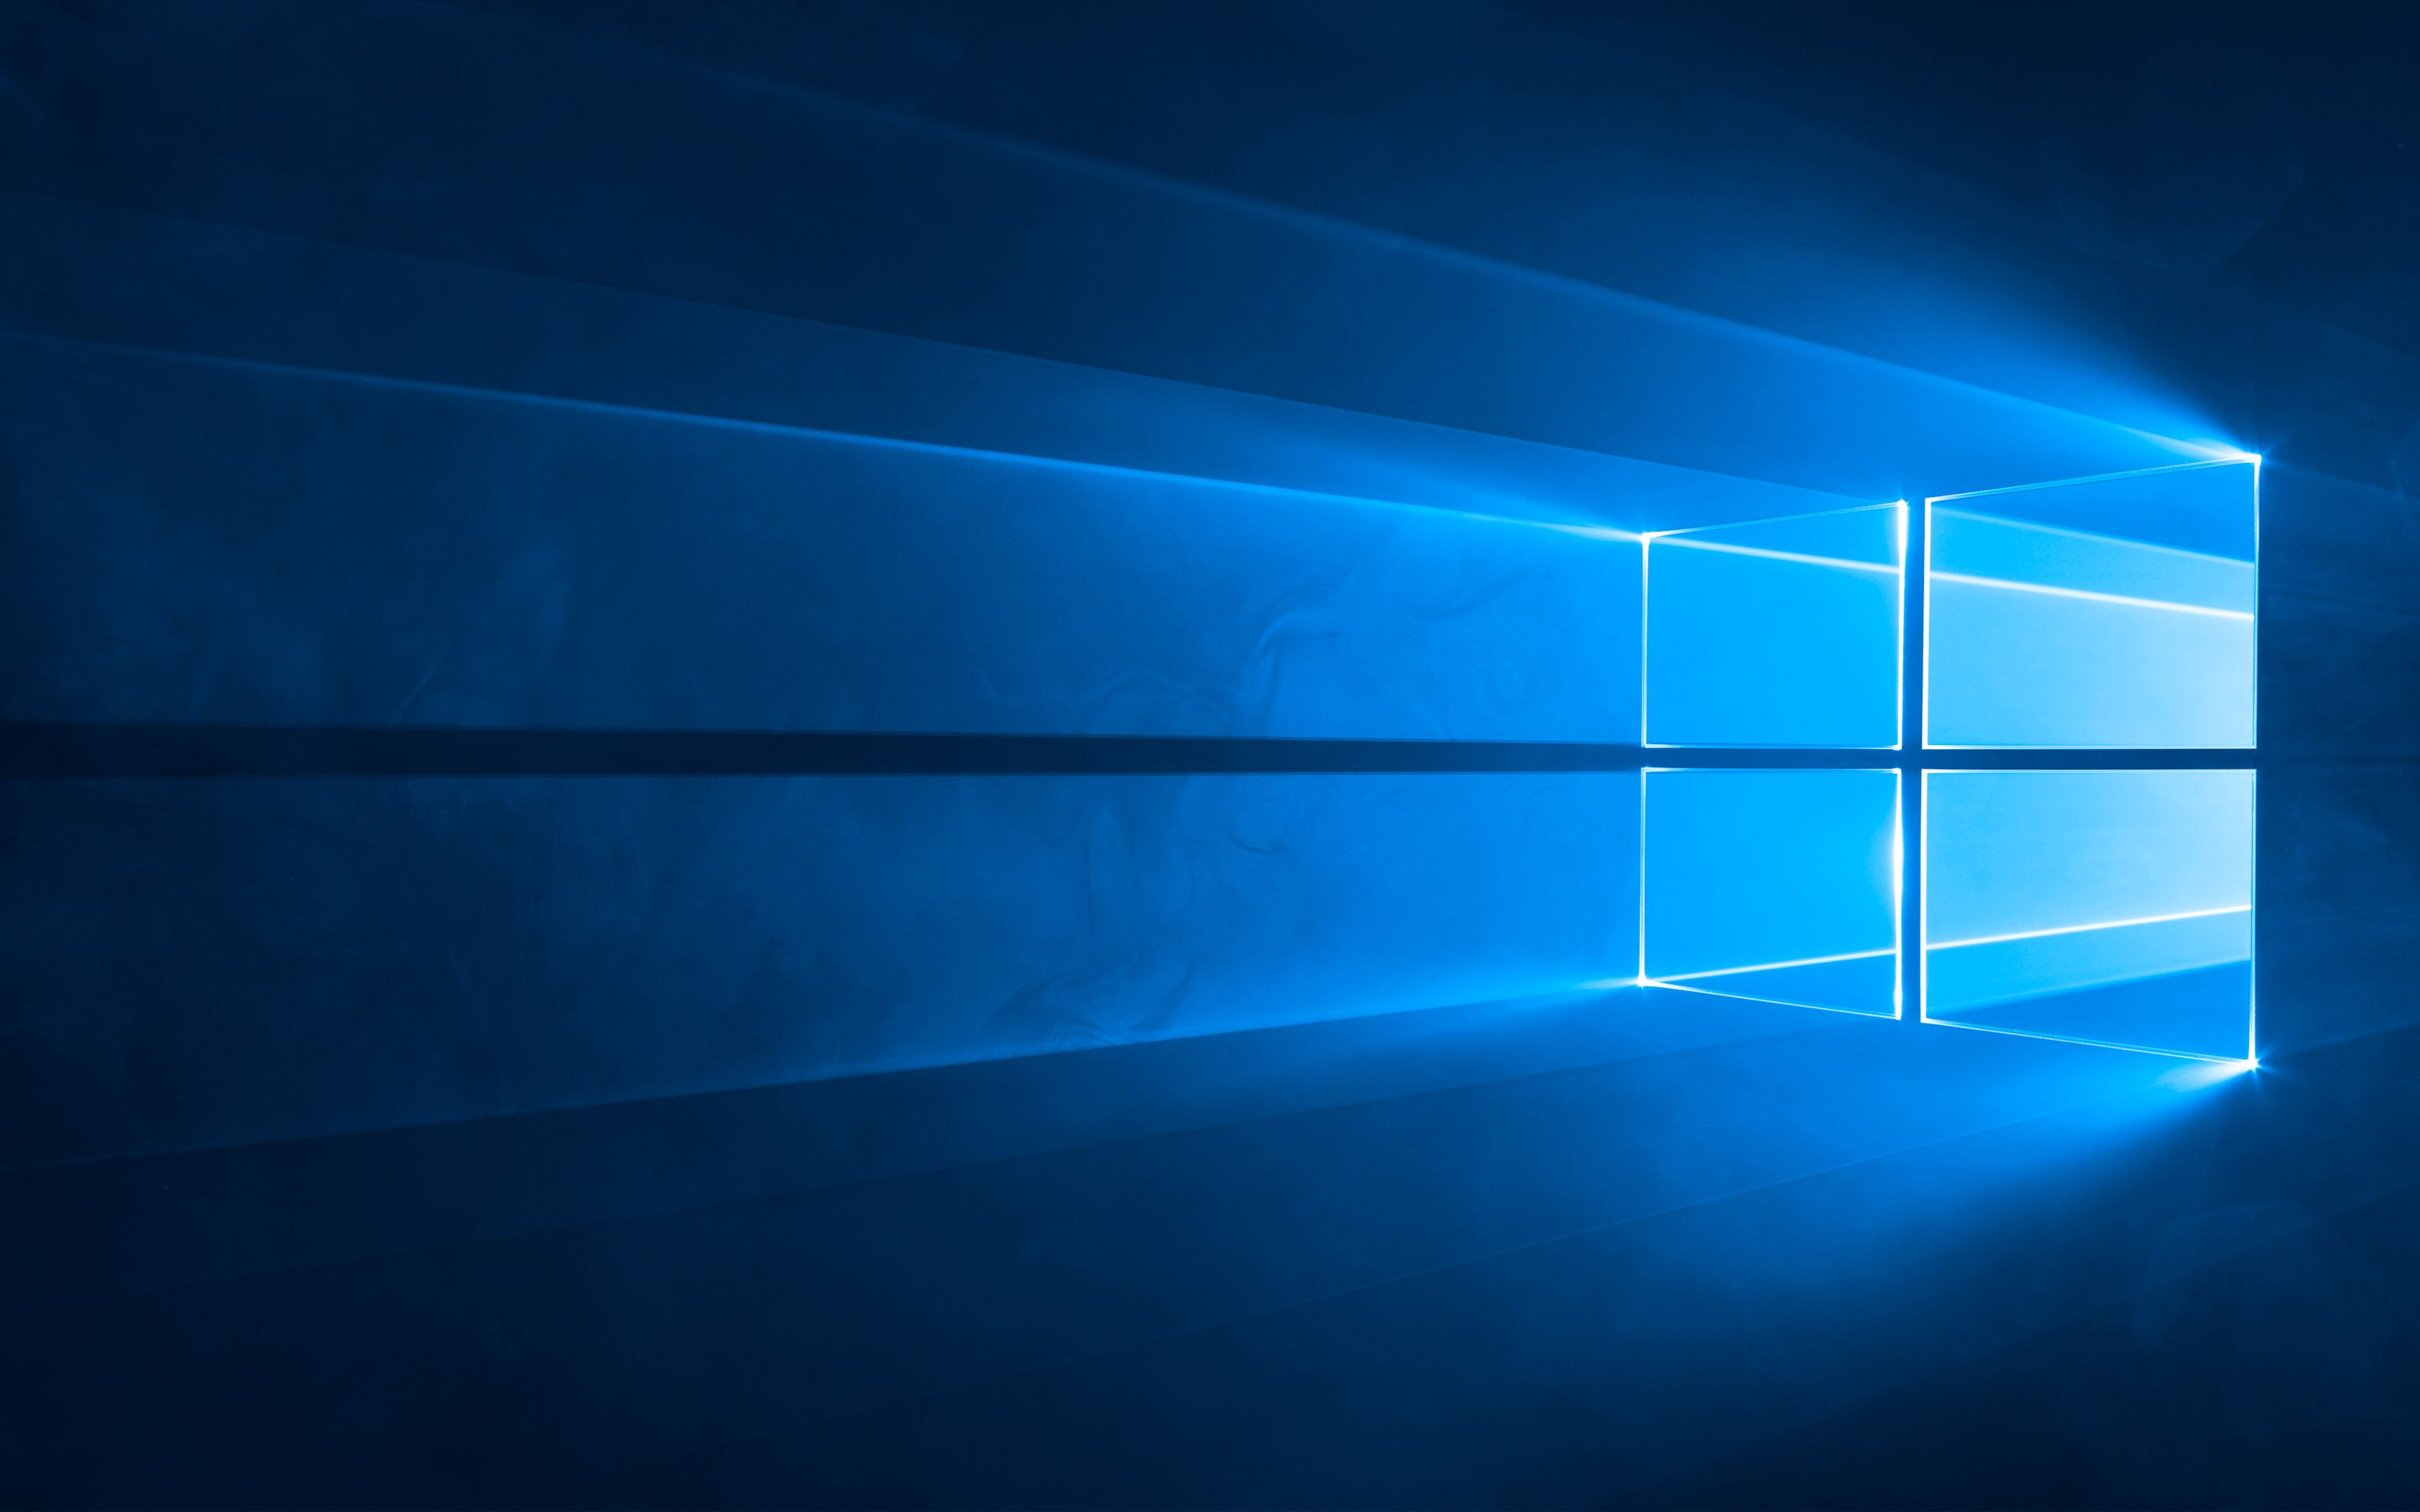 Windows 10 Wallpaper In 2020 Desktop Wallpaper Wallpaper Windows 10 Free Wallpaper Desktop